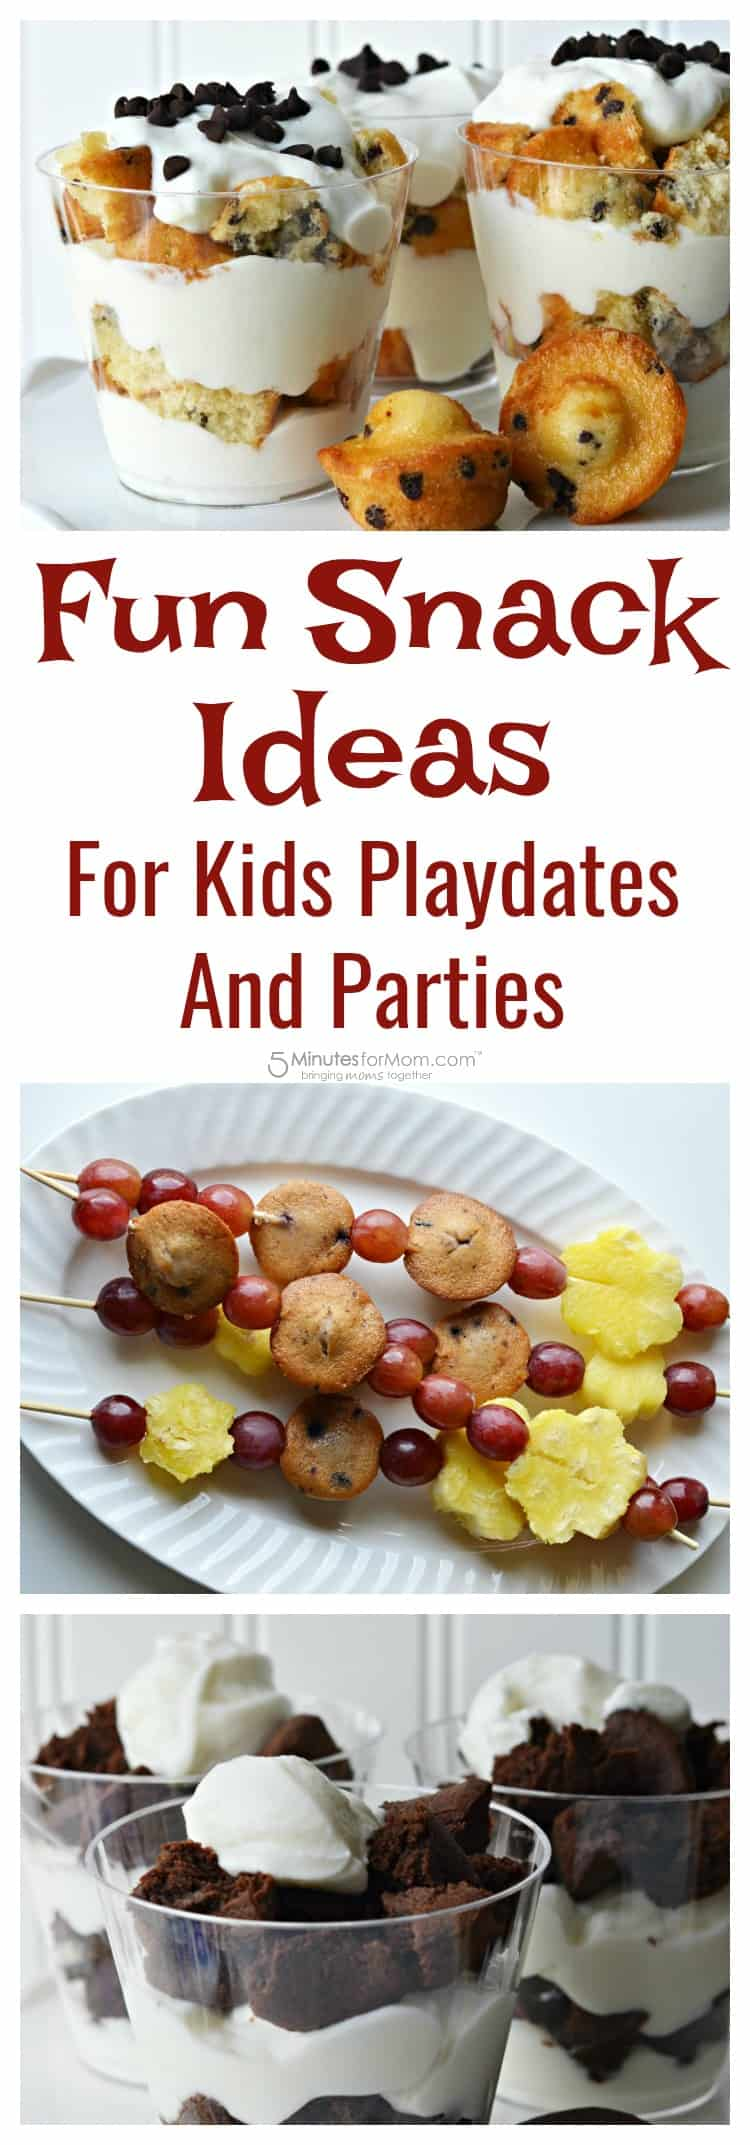 Fun Snack Ideas for Kids Playdates and Parties - Kids Snacks